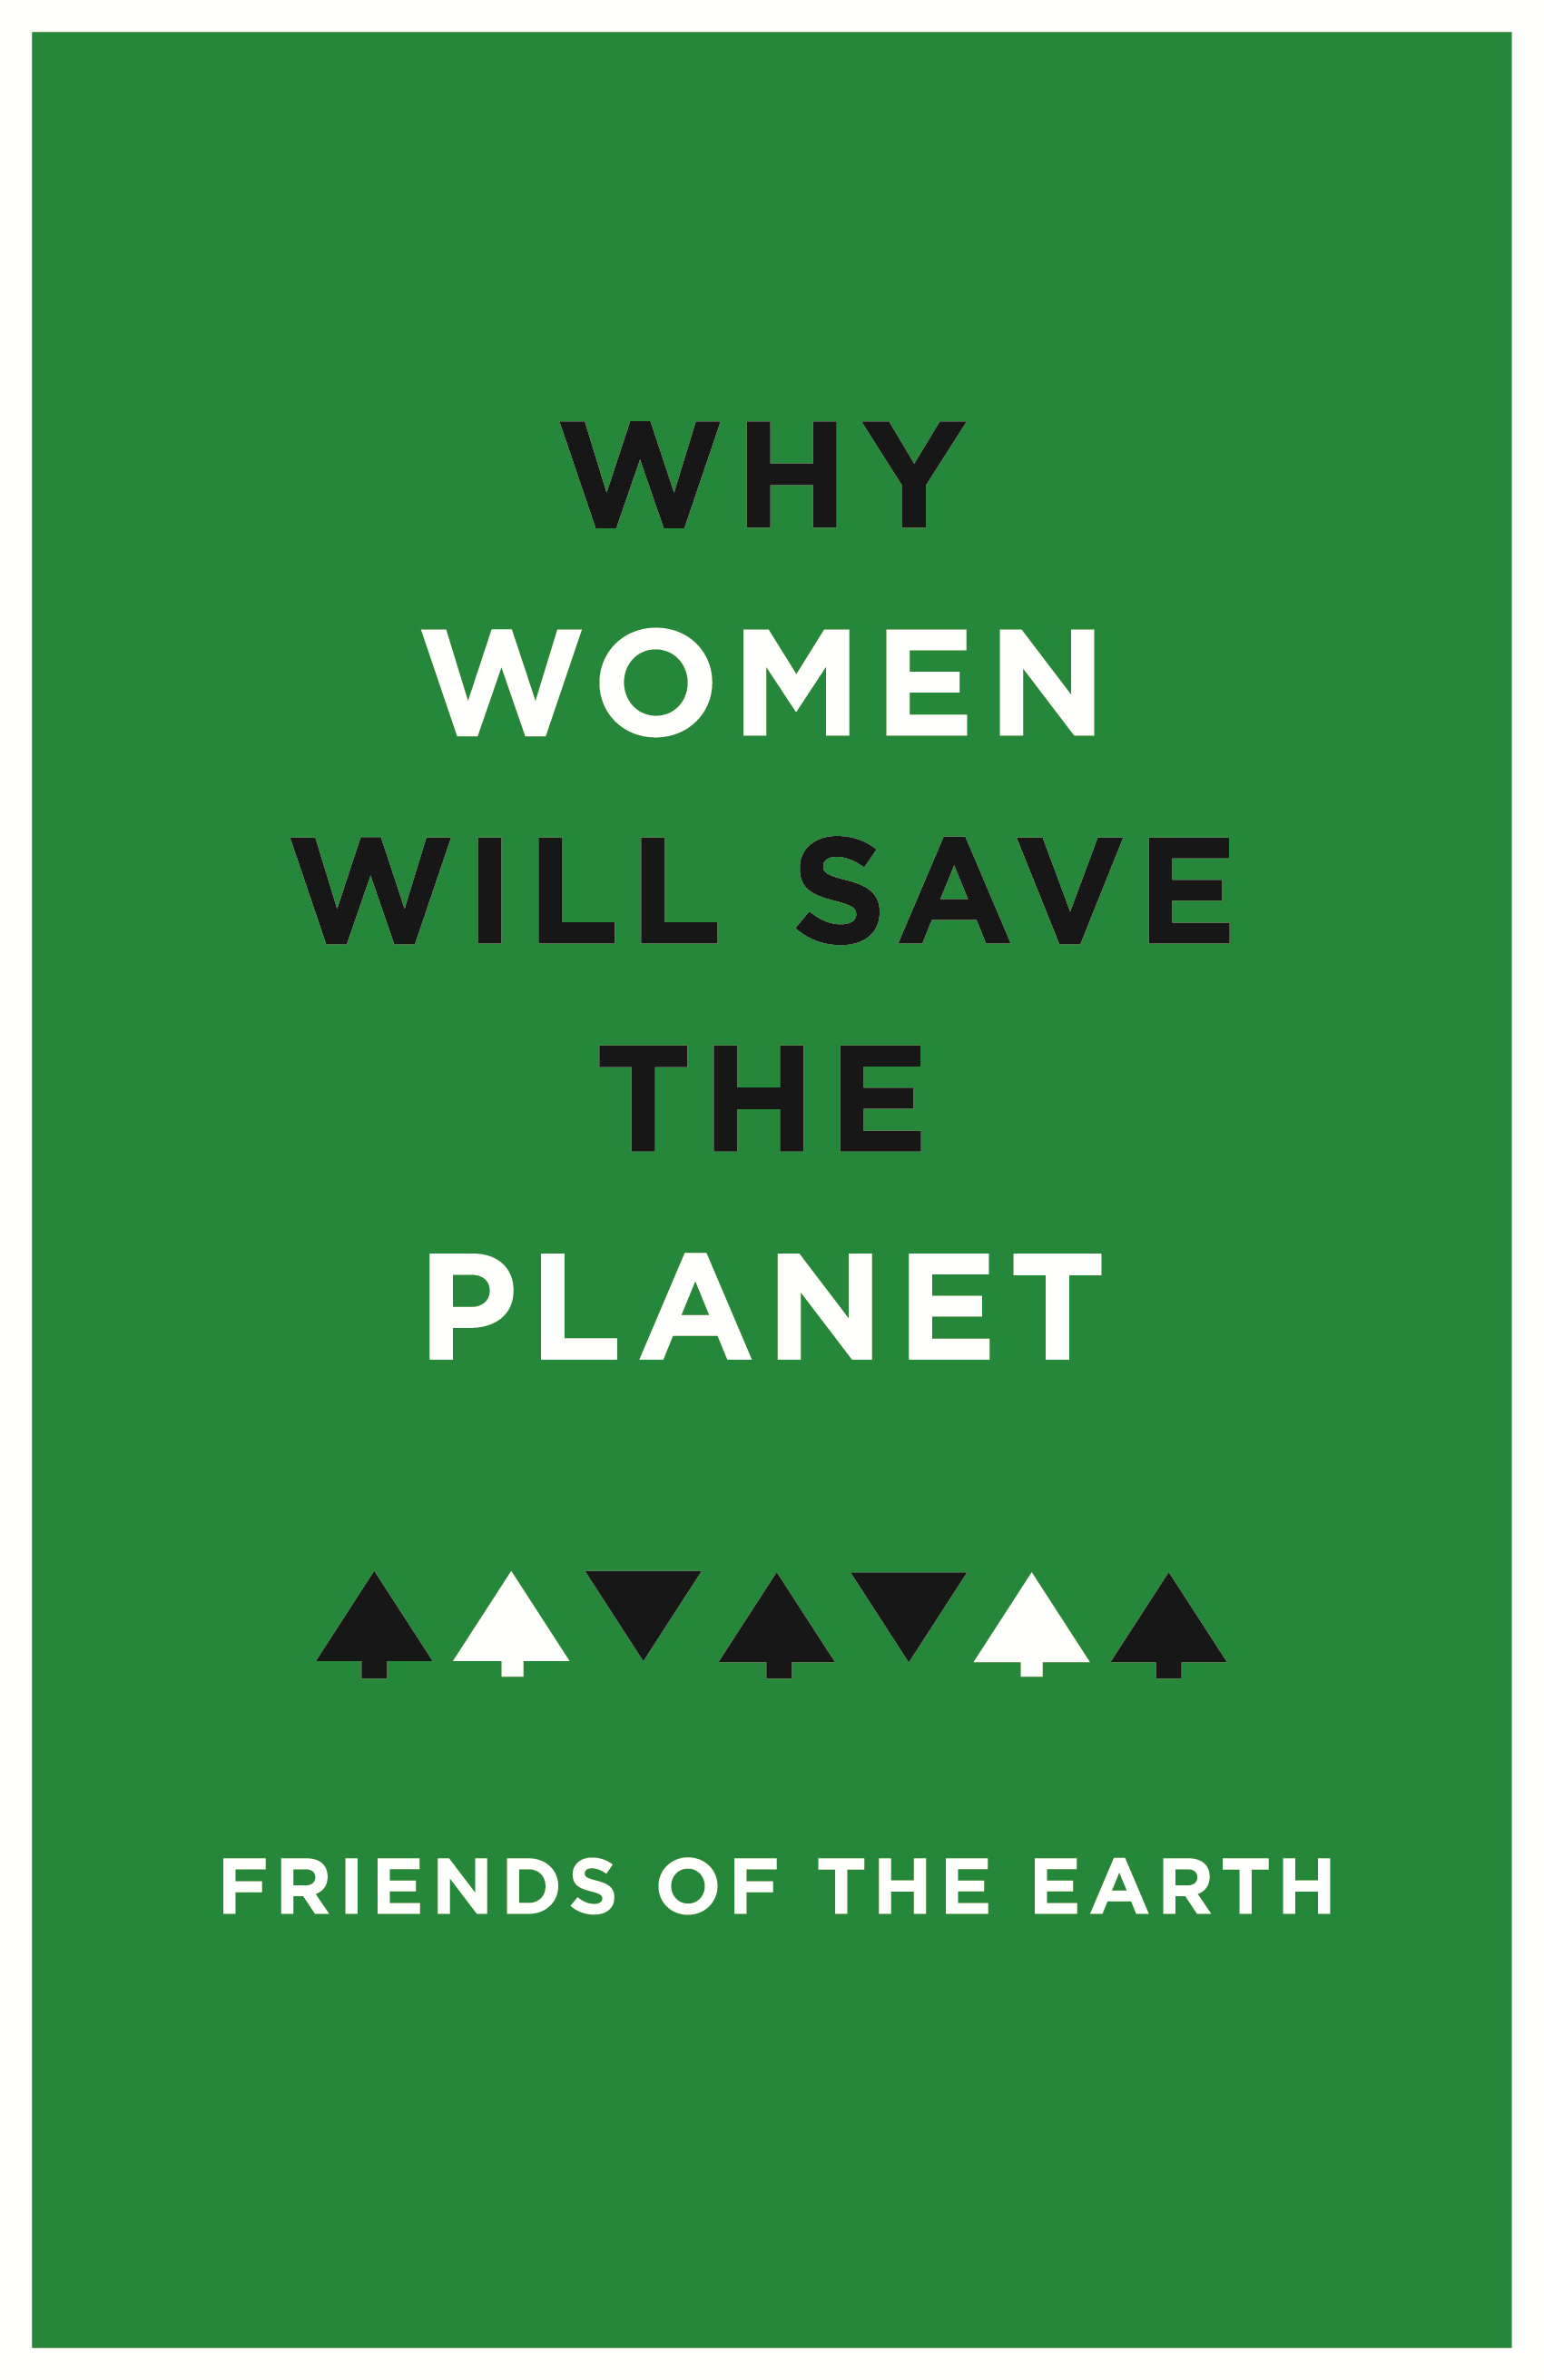 Why Women Will Save The Planet - Friends of The Earth